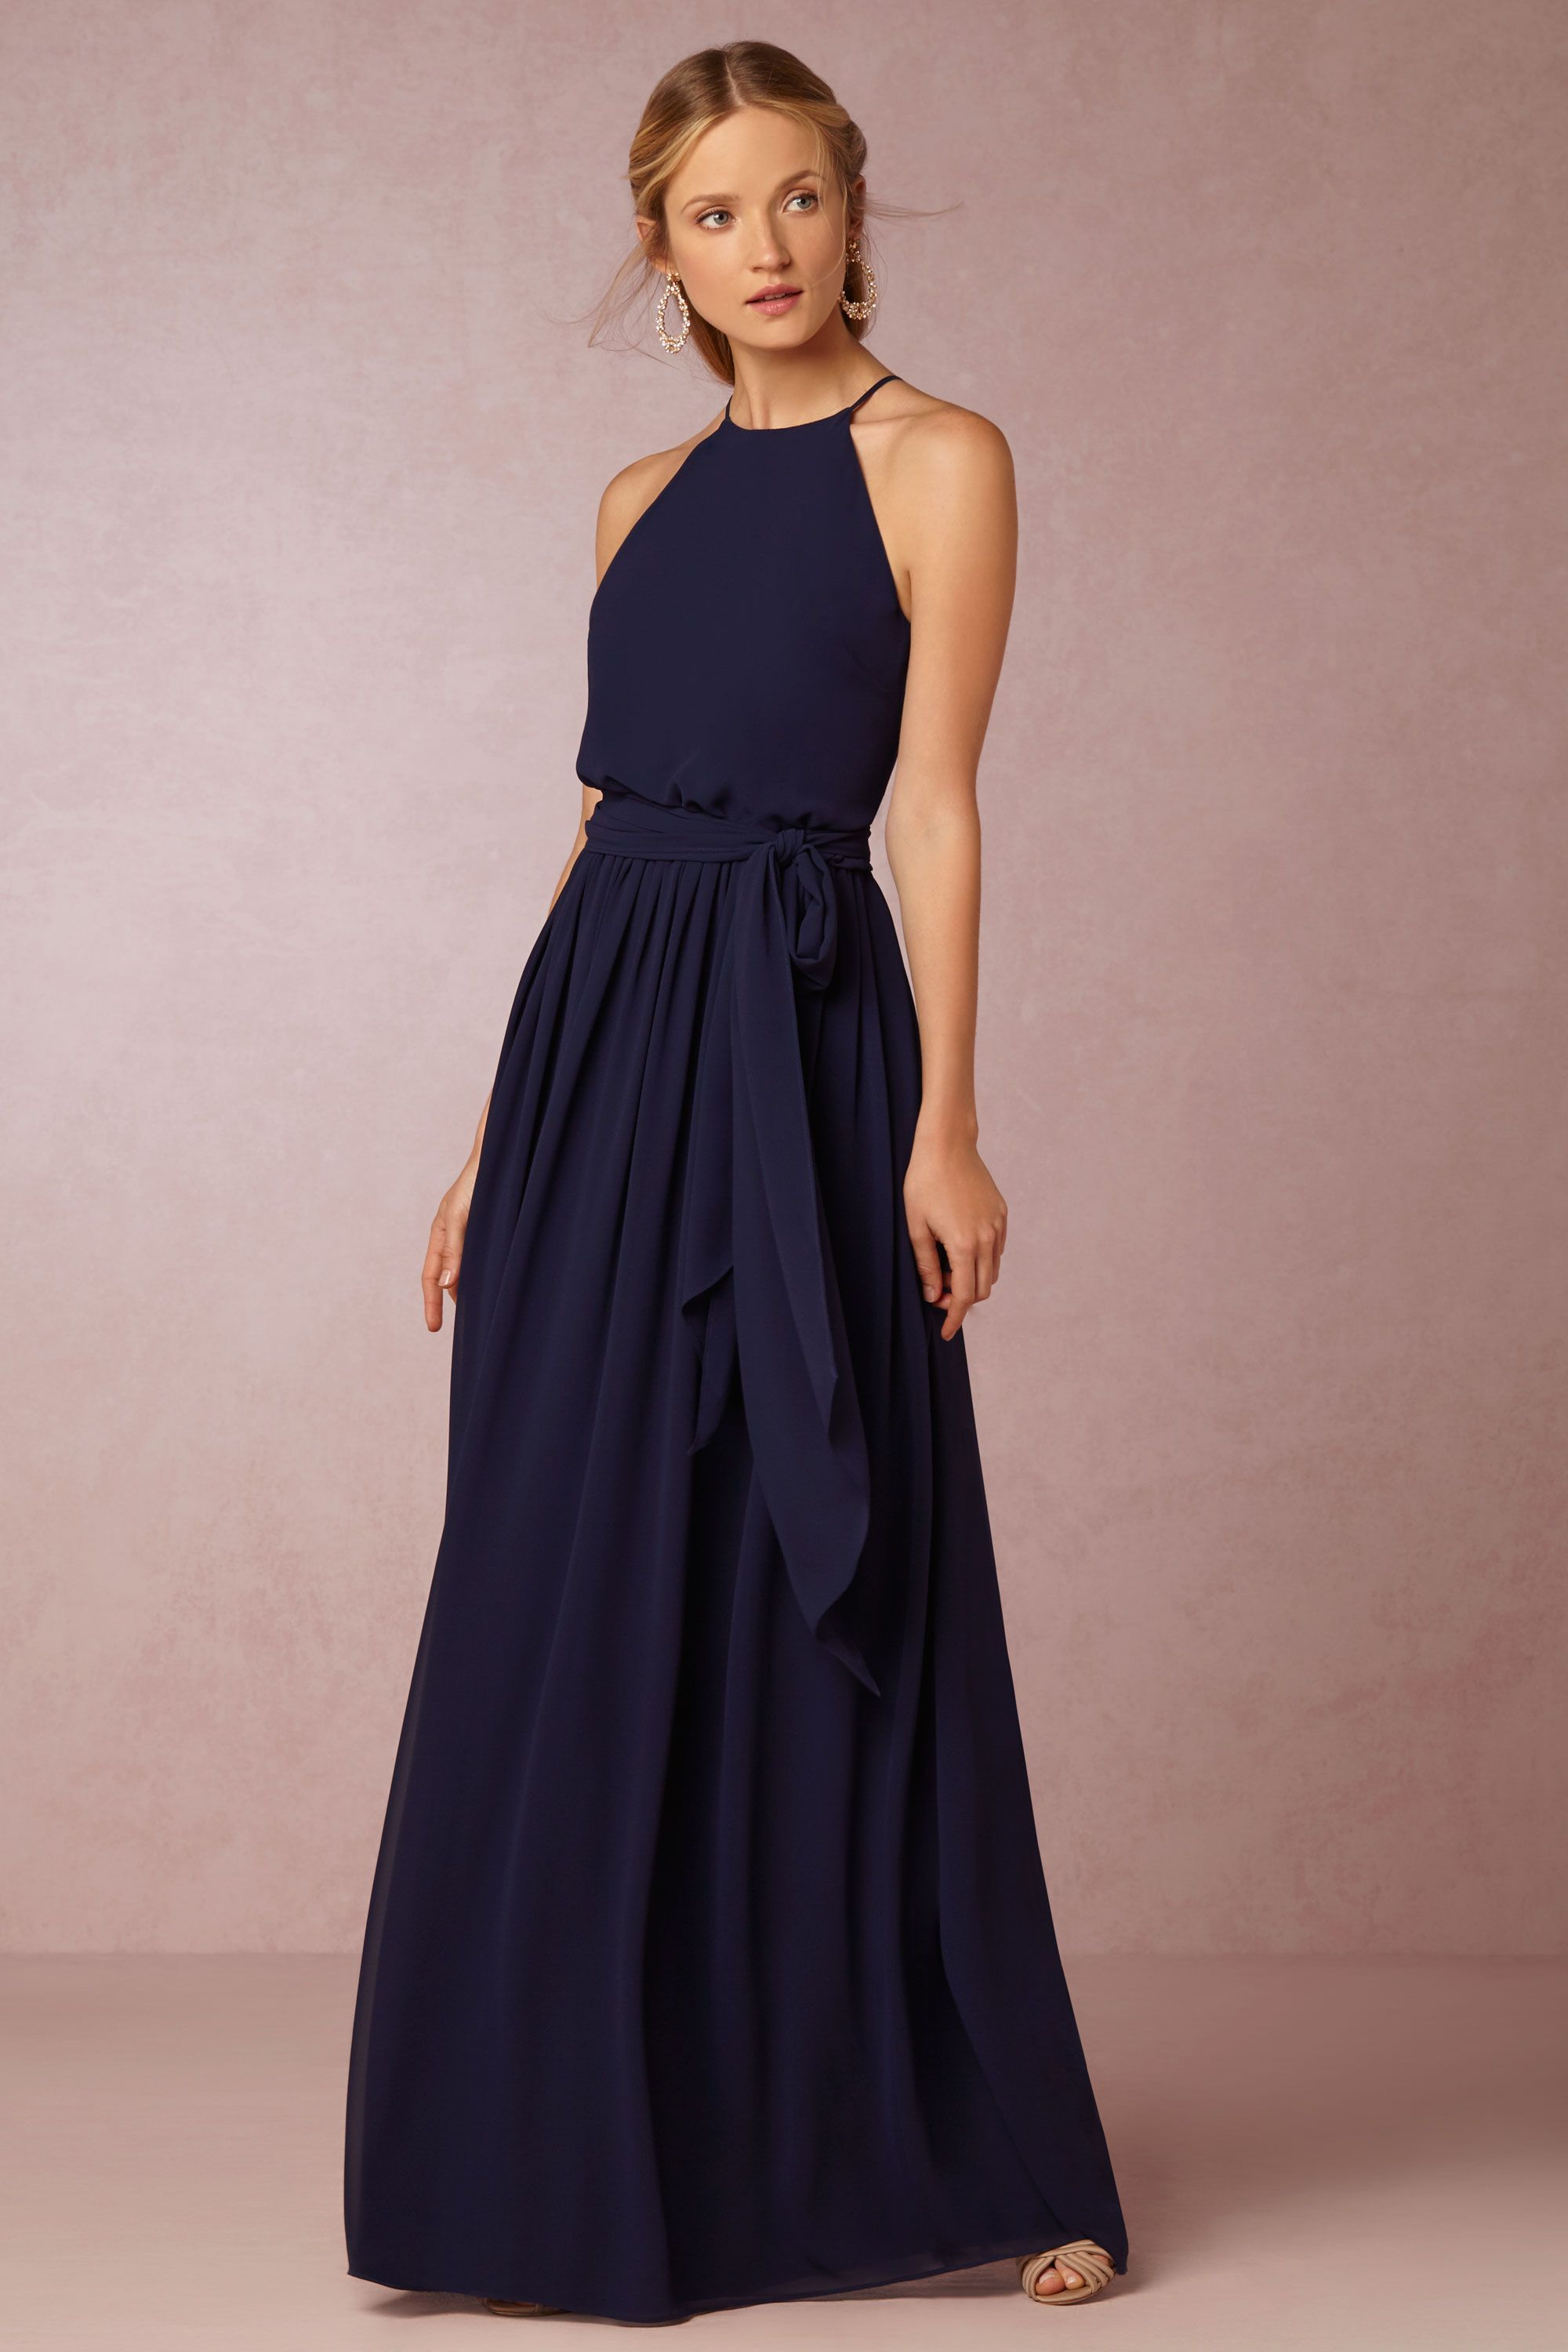 Navy blue bridesmaid dress by donna morgan alana dress in navy blue bridesmaid dress by donna morgan alana dress in midnight from bhldn ombrellifo Choice Image